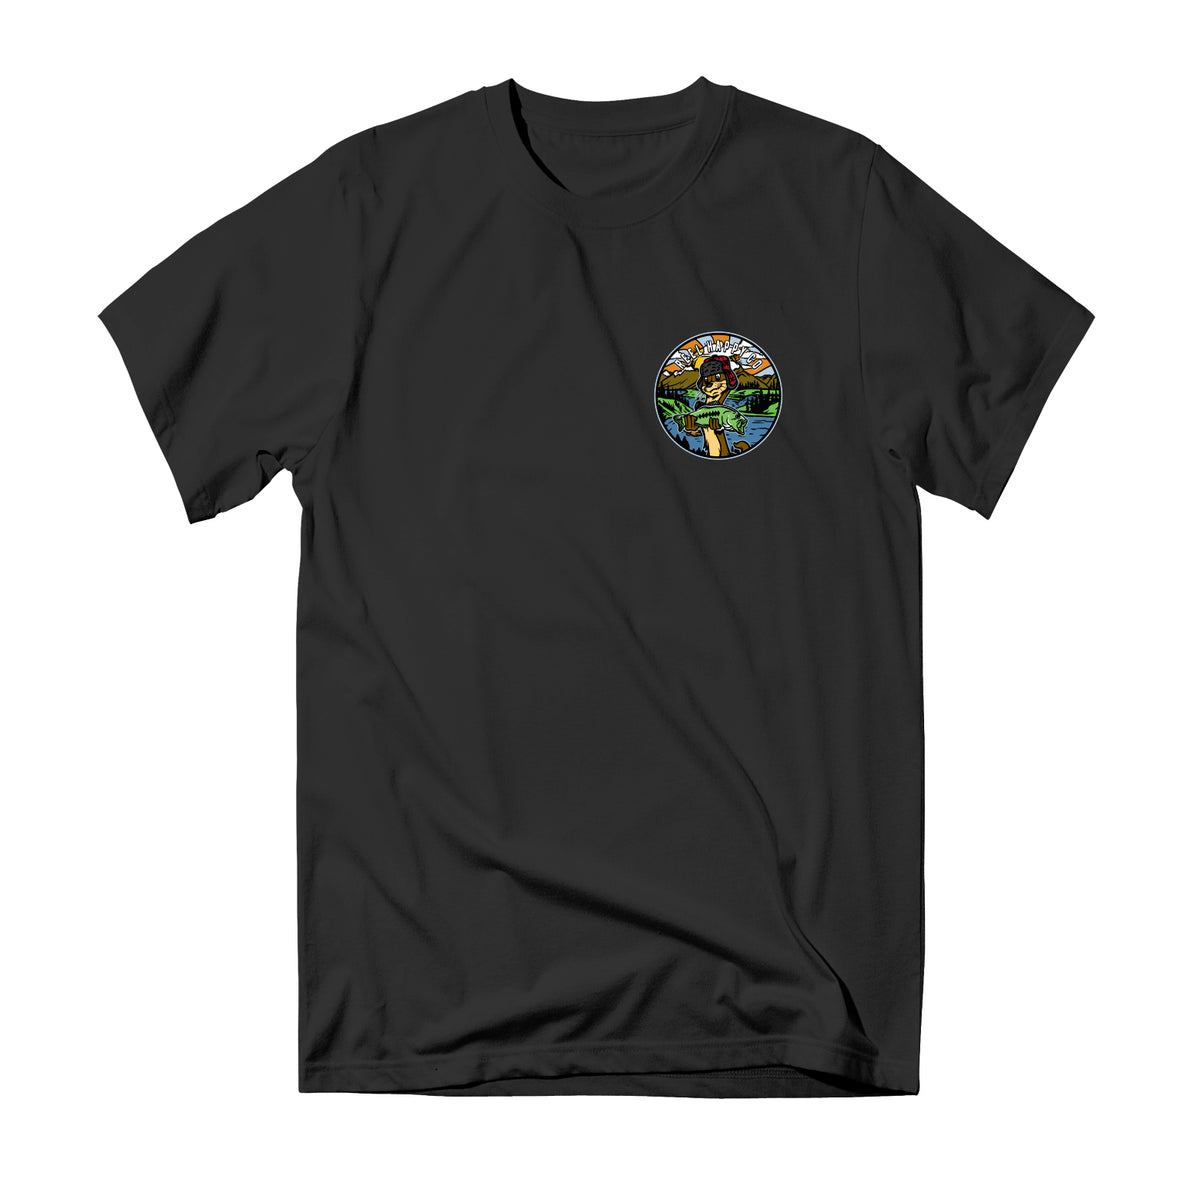 Lazy River T-Shirt - Black - Reel Happy Co